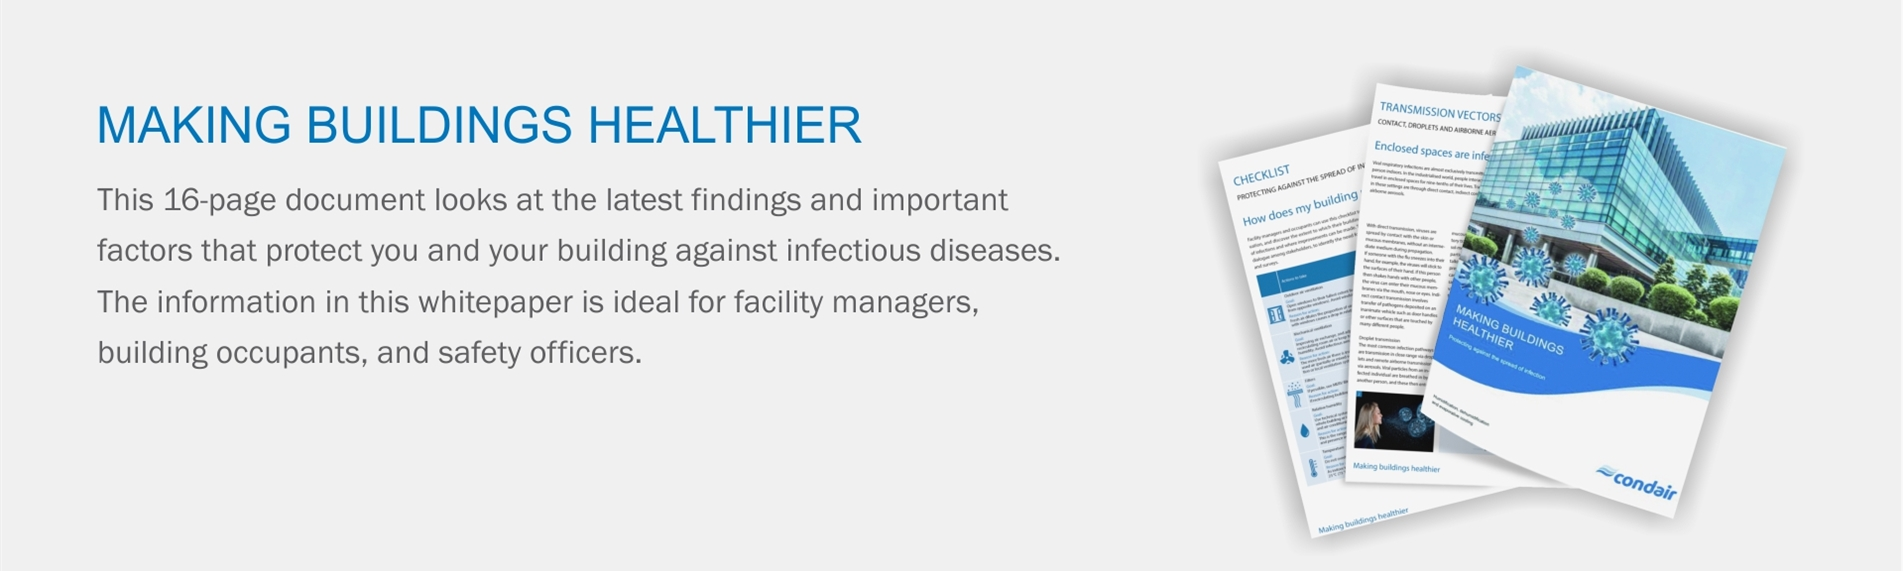 Condair's white paper on how to make buildings healthier